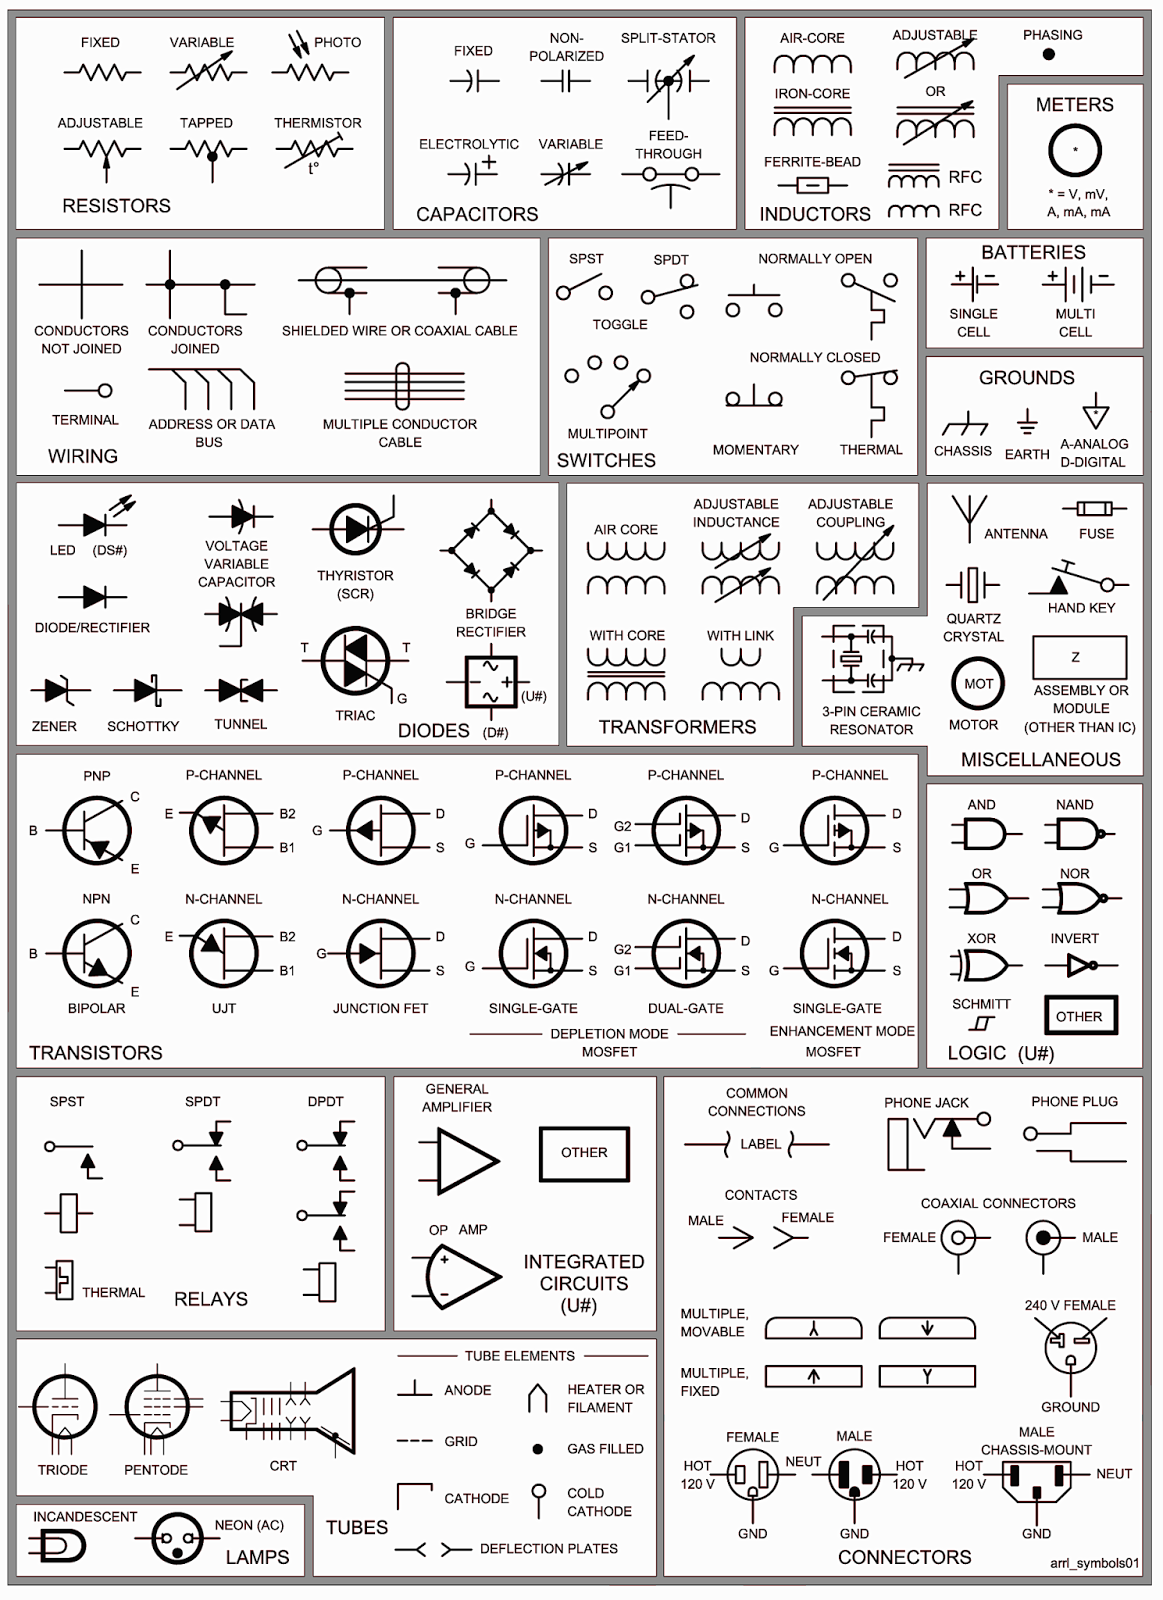 Schematic Symbols For Electronics And Electrical